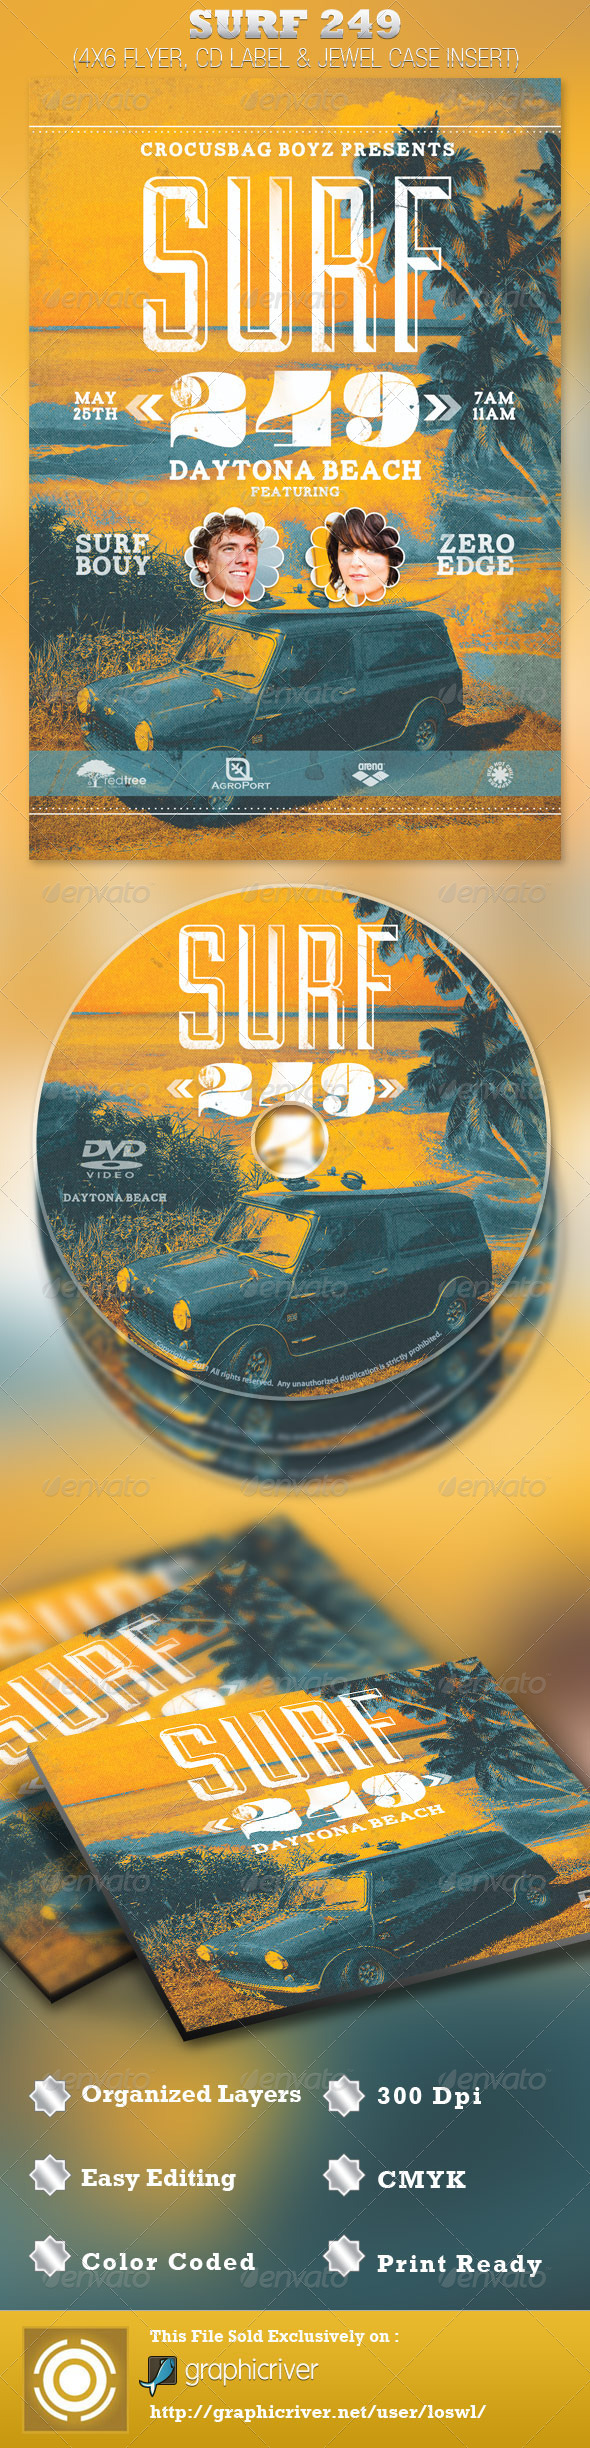 Surf 249 Flyer and CD Template - Events Flyers